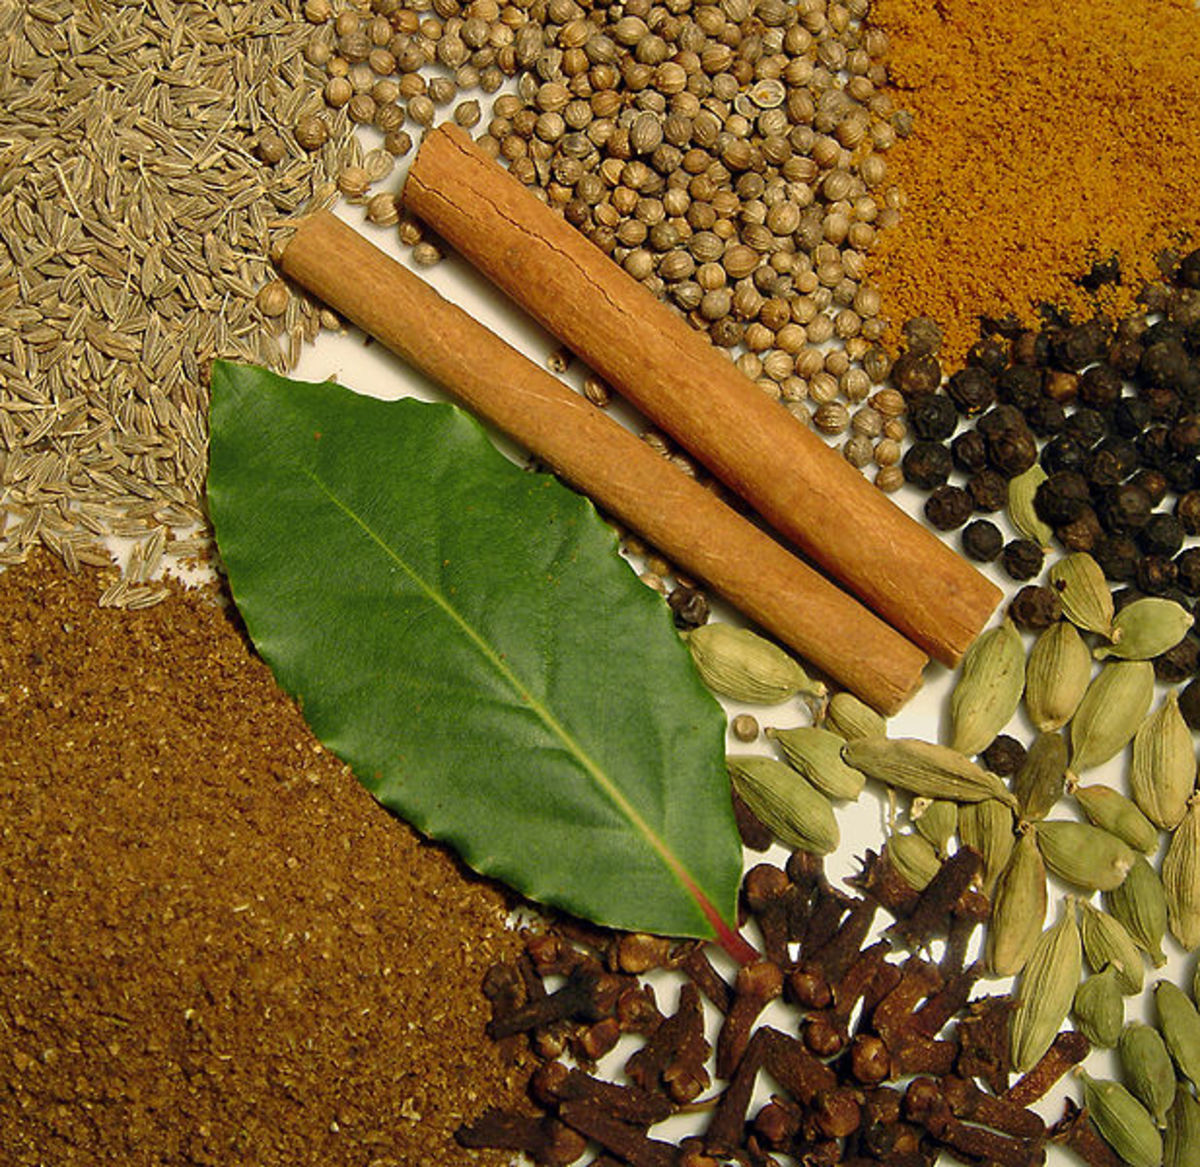 Garam masala - a mix of spices